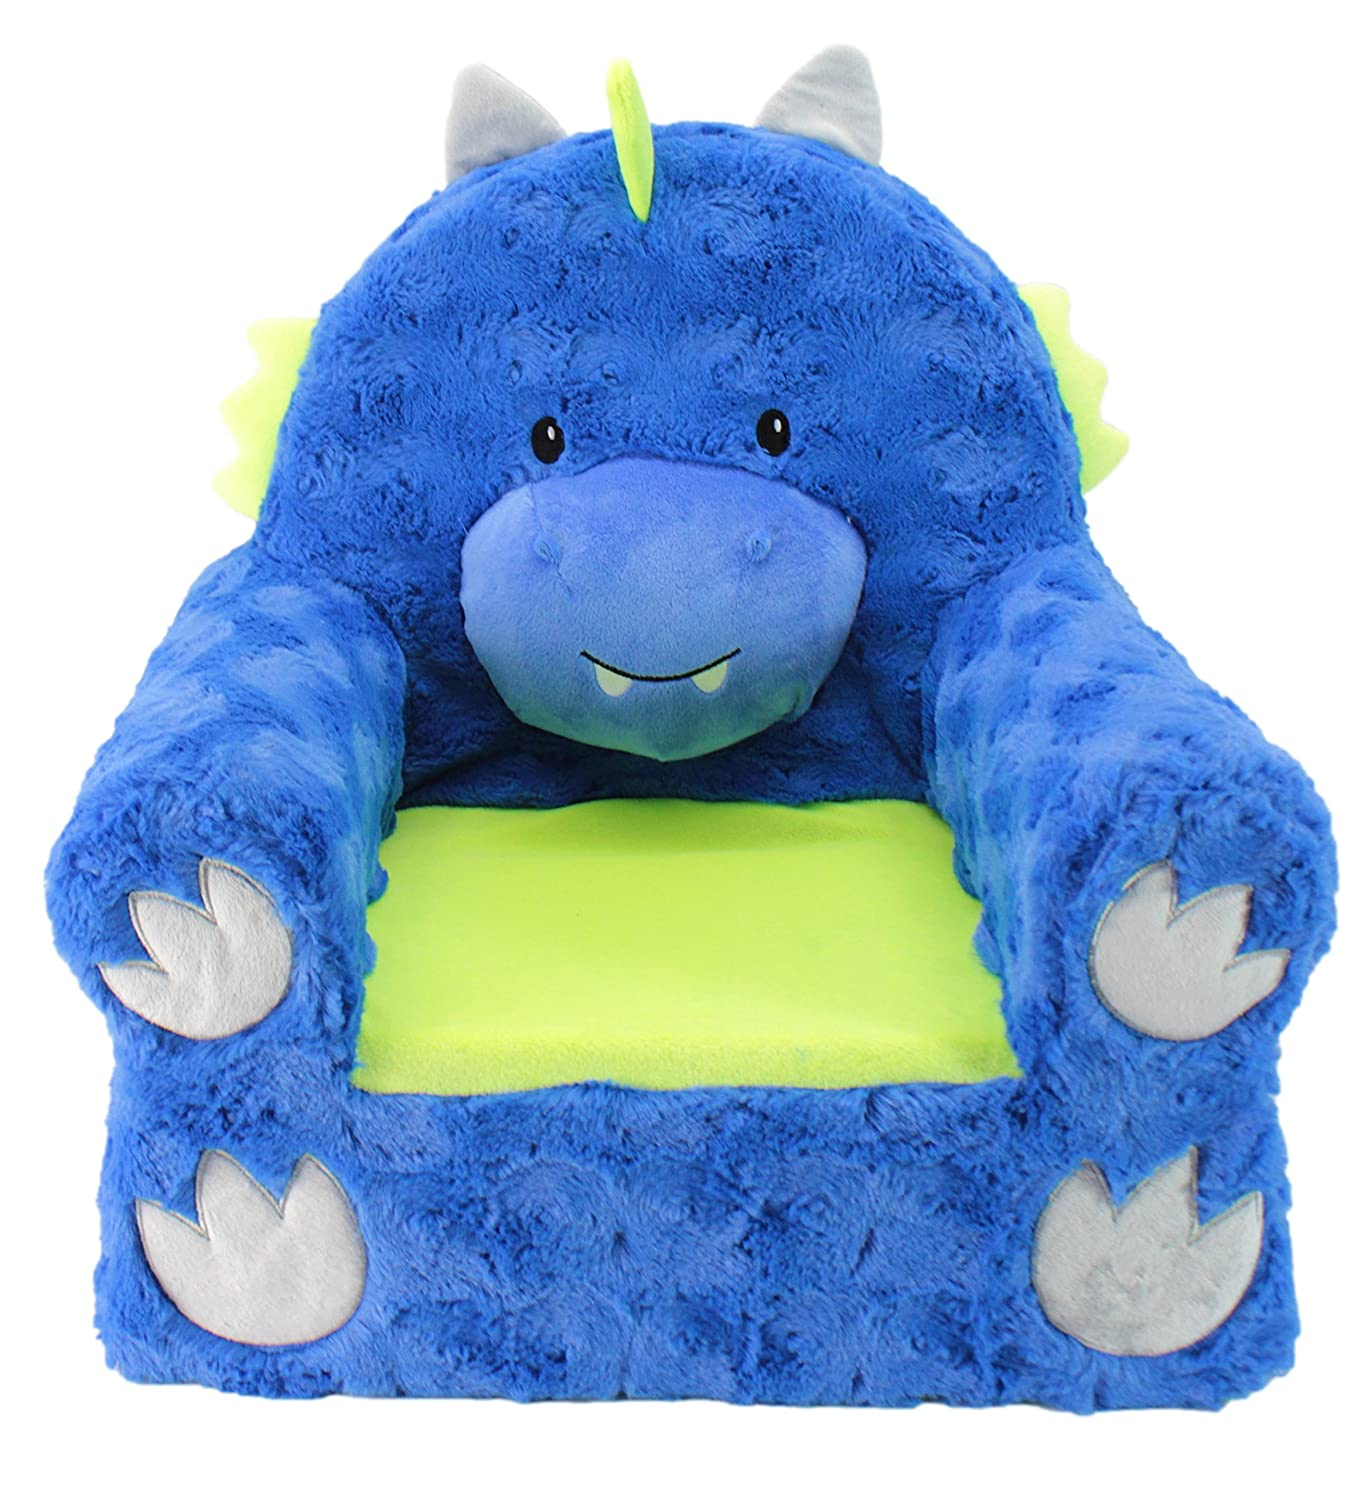 Animal Adventure Sweet SeatsBlue Dragon Children's ChairLarge SizeMachine Washable Cover